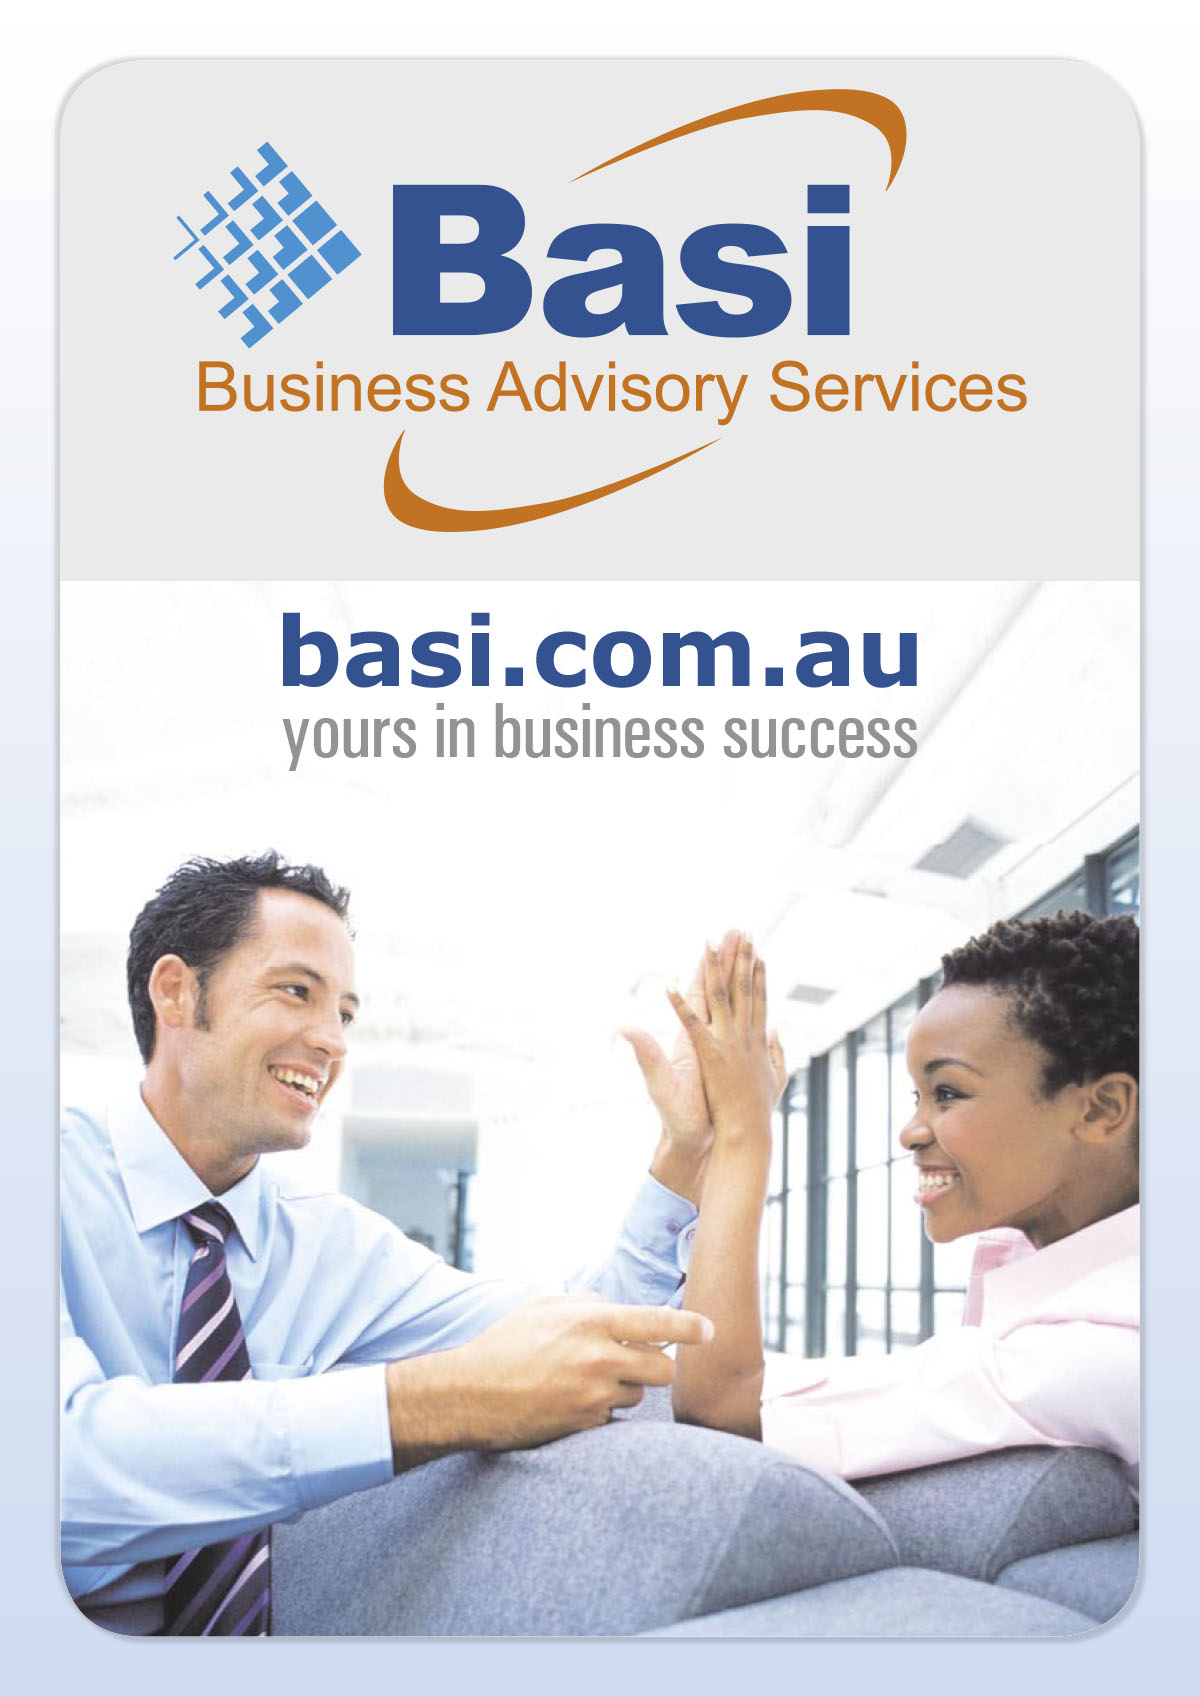 basi-business-services-blacktown-graphic-design-04